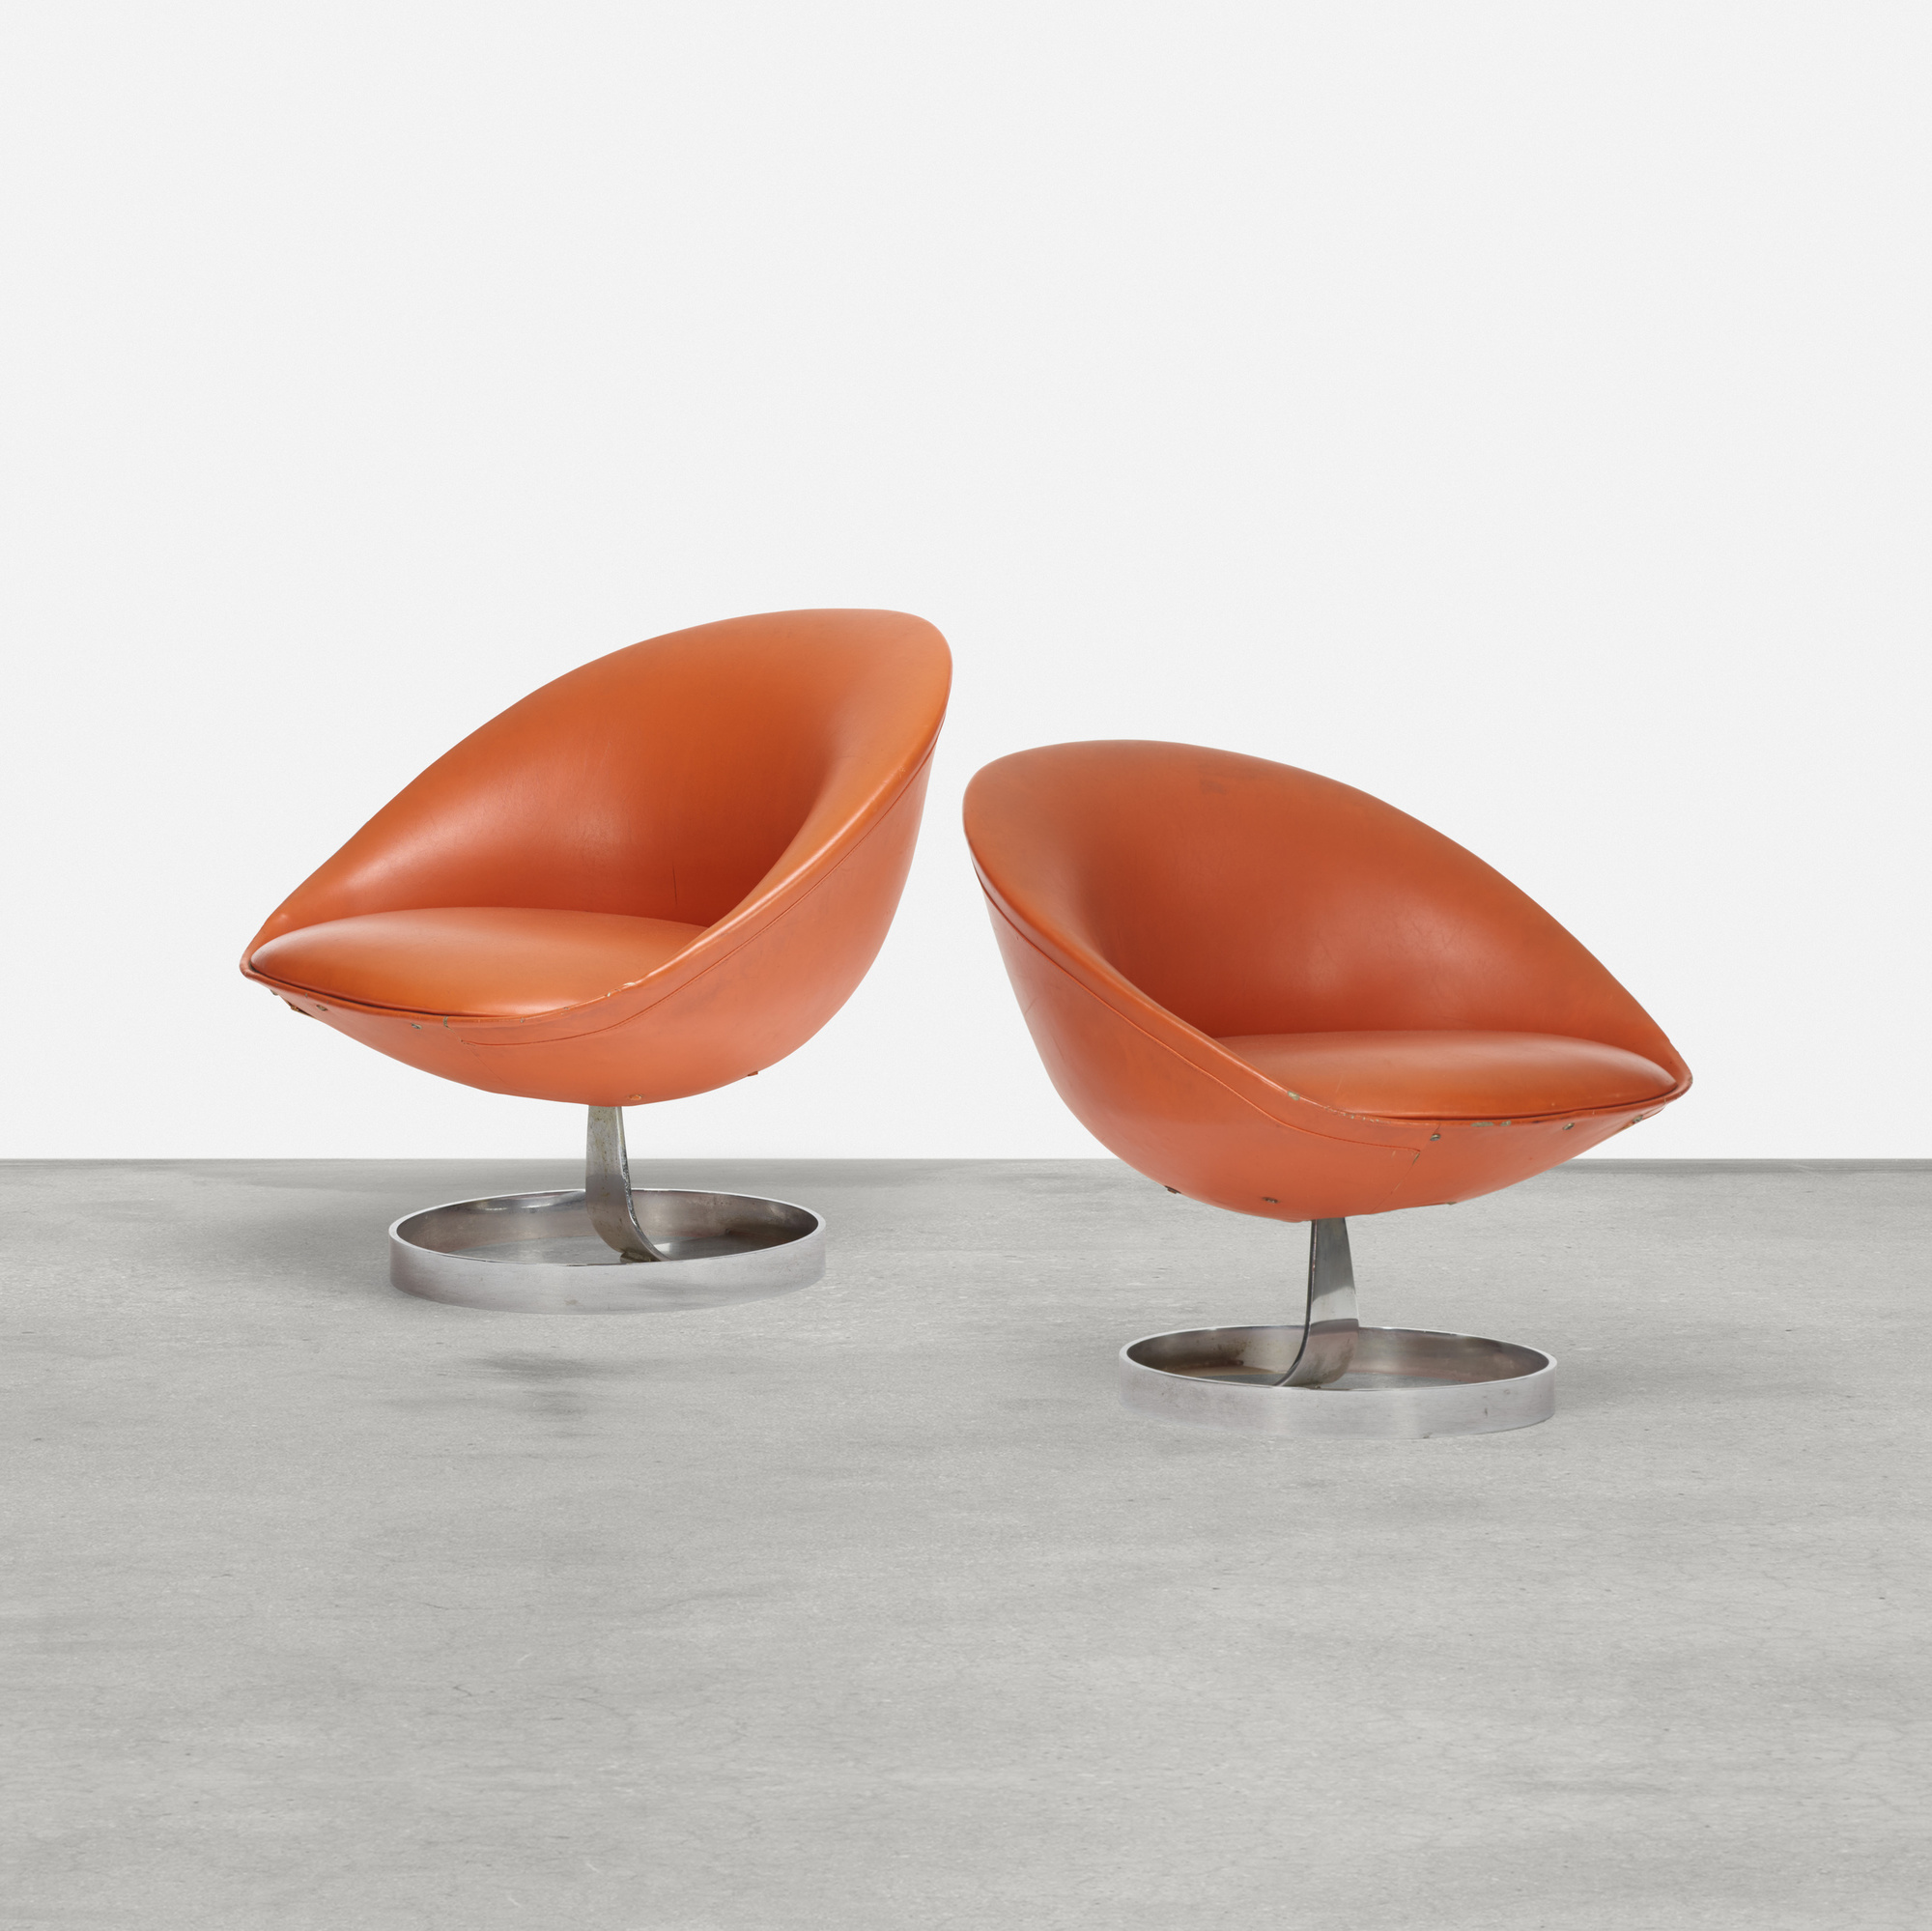 135: Maurice Calka / chairs model K1, pair (1 of 2)